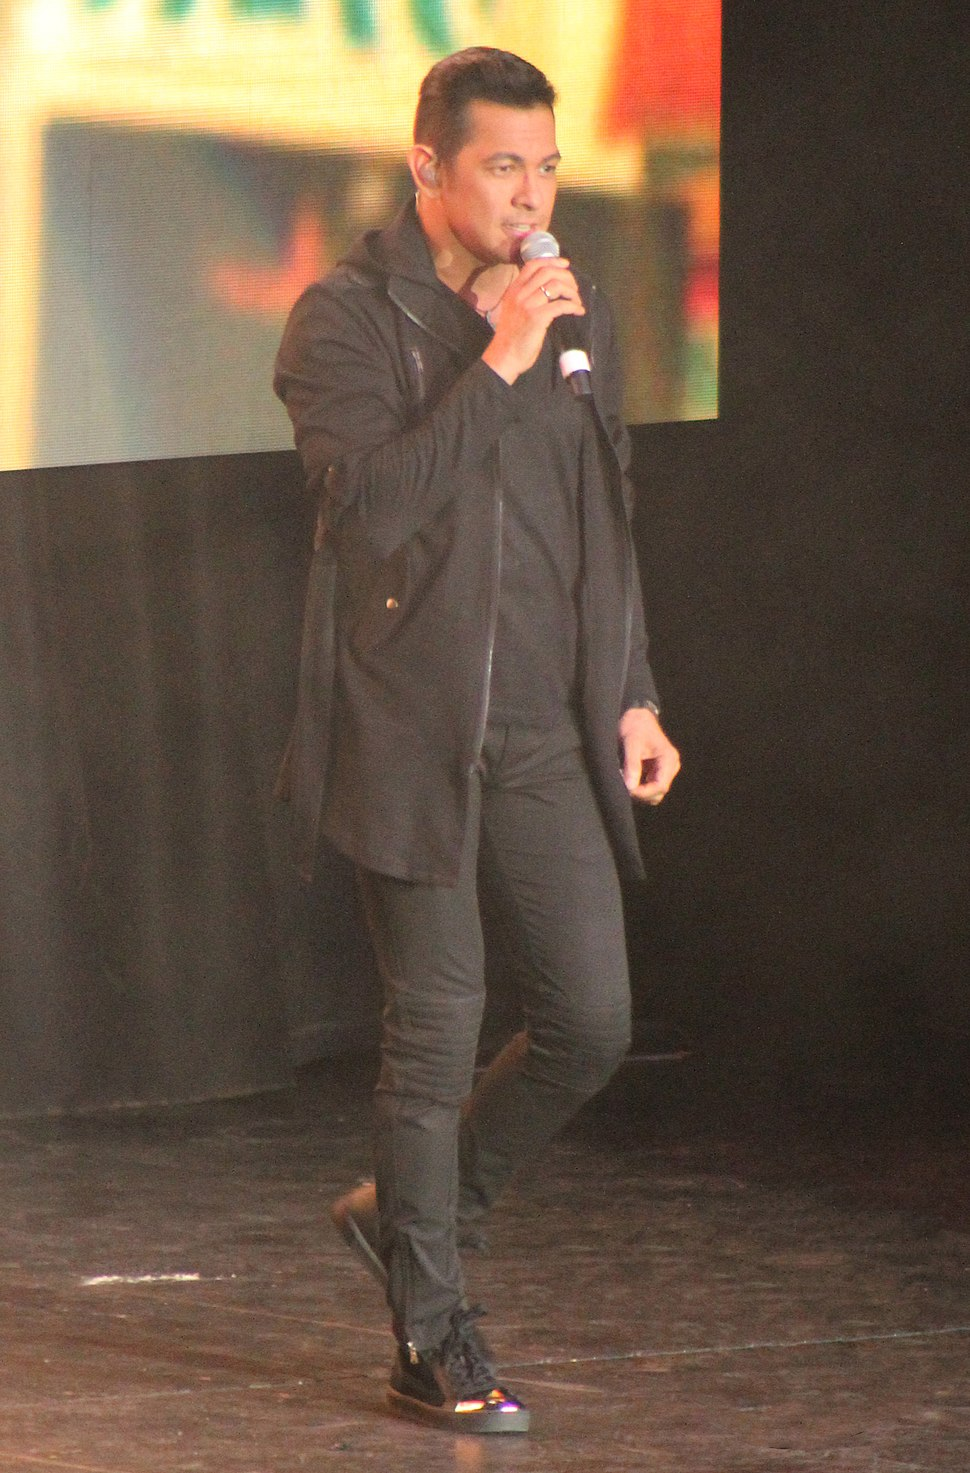 A full body image of Valenciano wearing black pants, shirt, jacket and sneakers while singing into a hand-held microphone